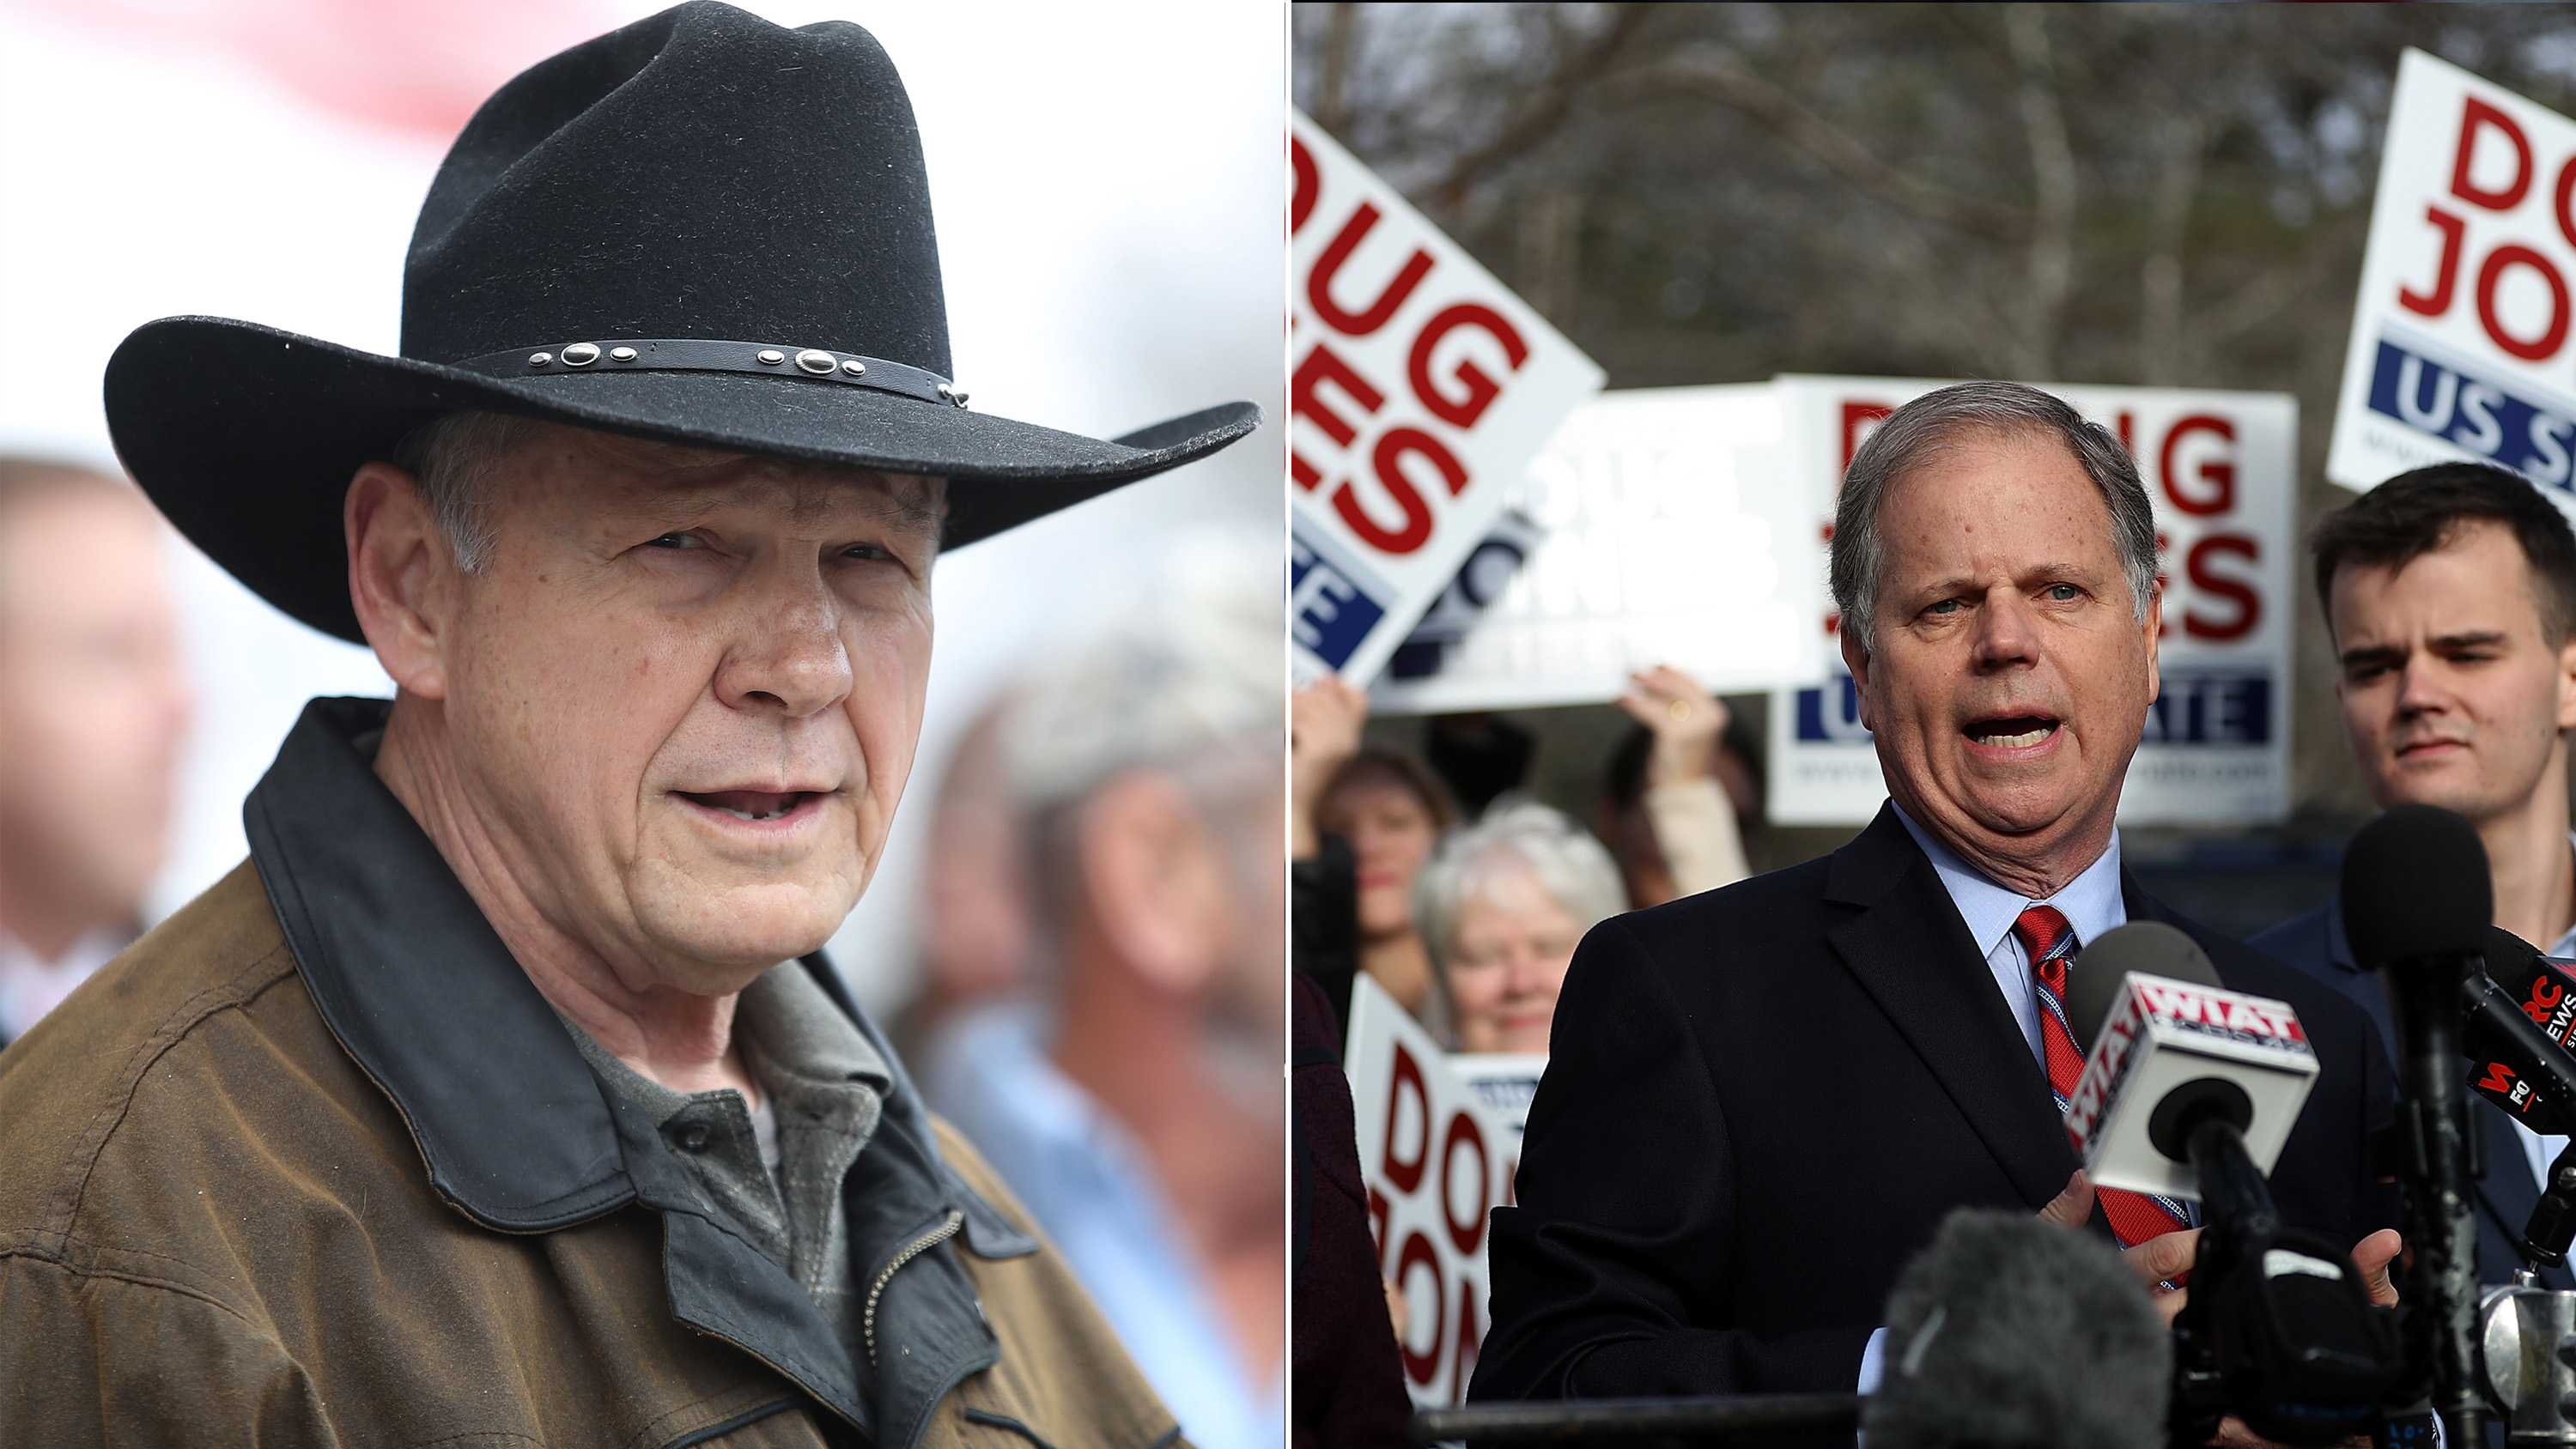 Alabama Special Election candidates Roy Moore (L) and Doug Jones (R) face off for Attorney General Jeff Sessions' vacant Senate seat.